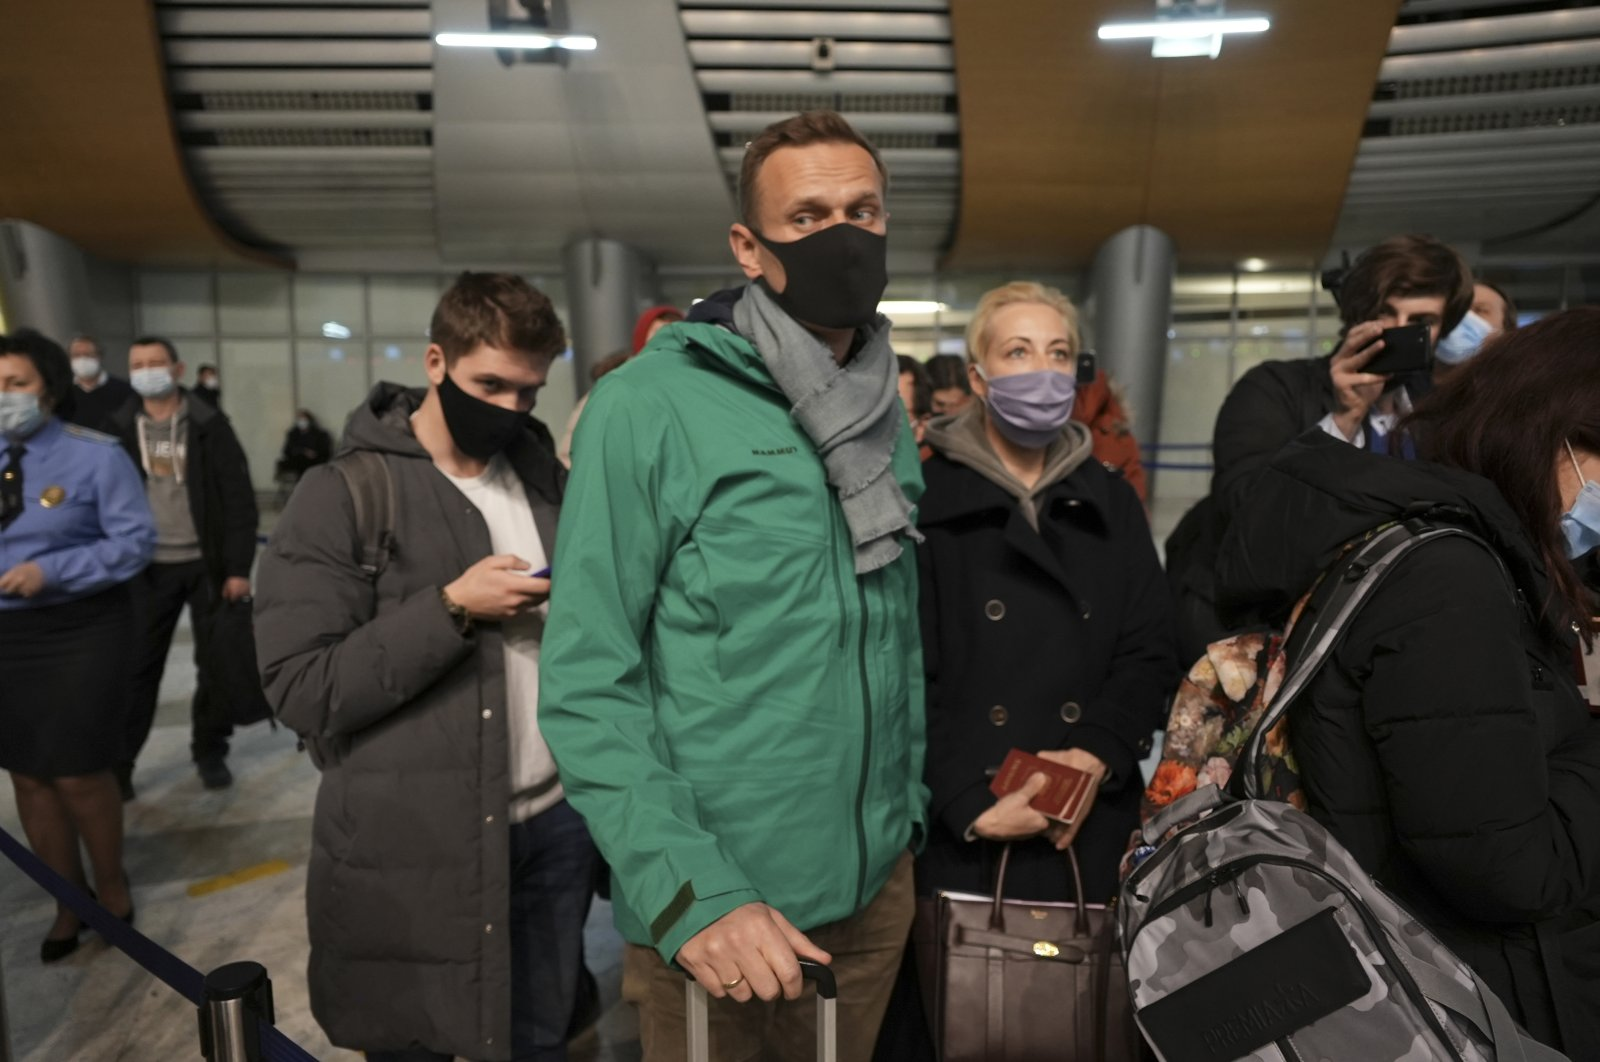 Alexei Navalny and his wife Yuliastand in line at the passport control after arriving at Sheremetyevo airport, outside Moscow, Russia, Sunday, Jan. 17, 2021. (AP Photo)